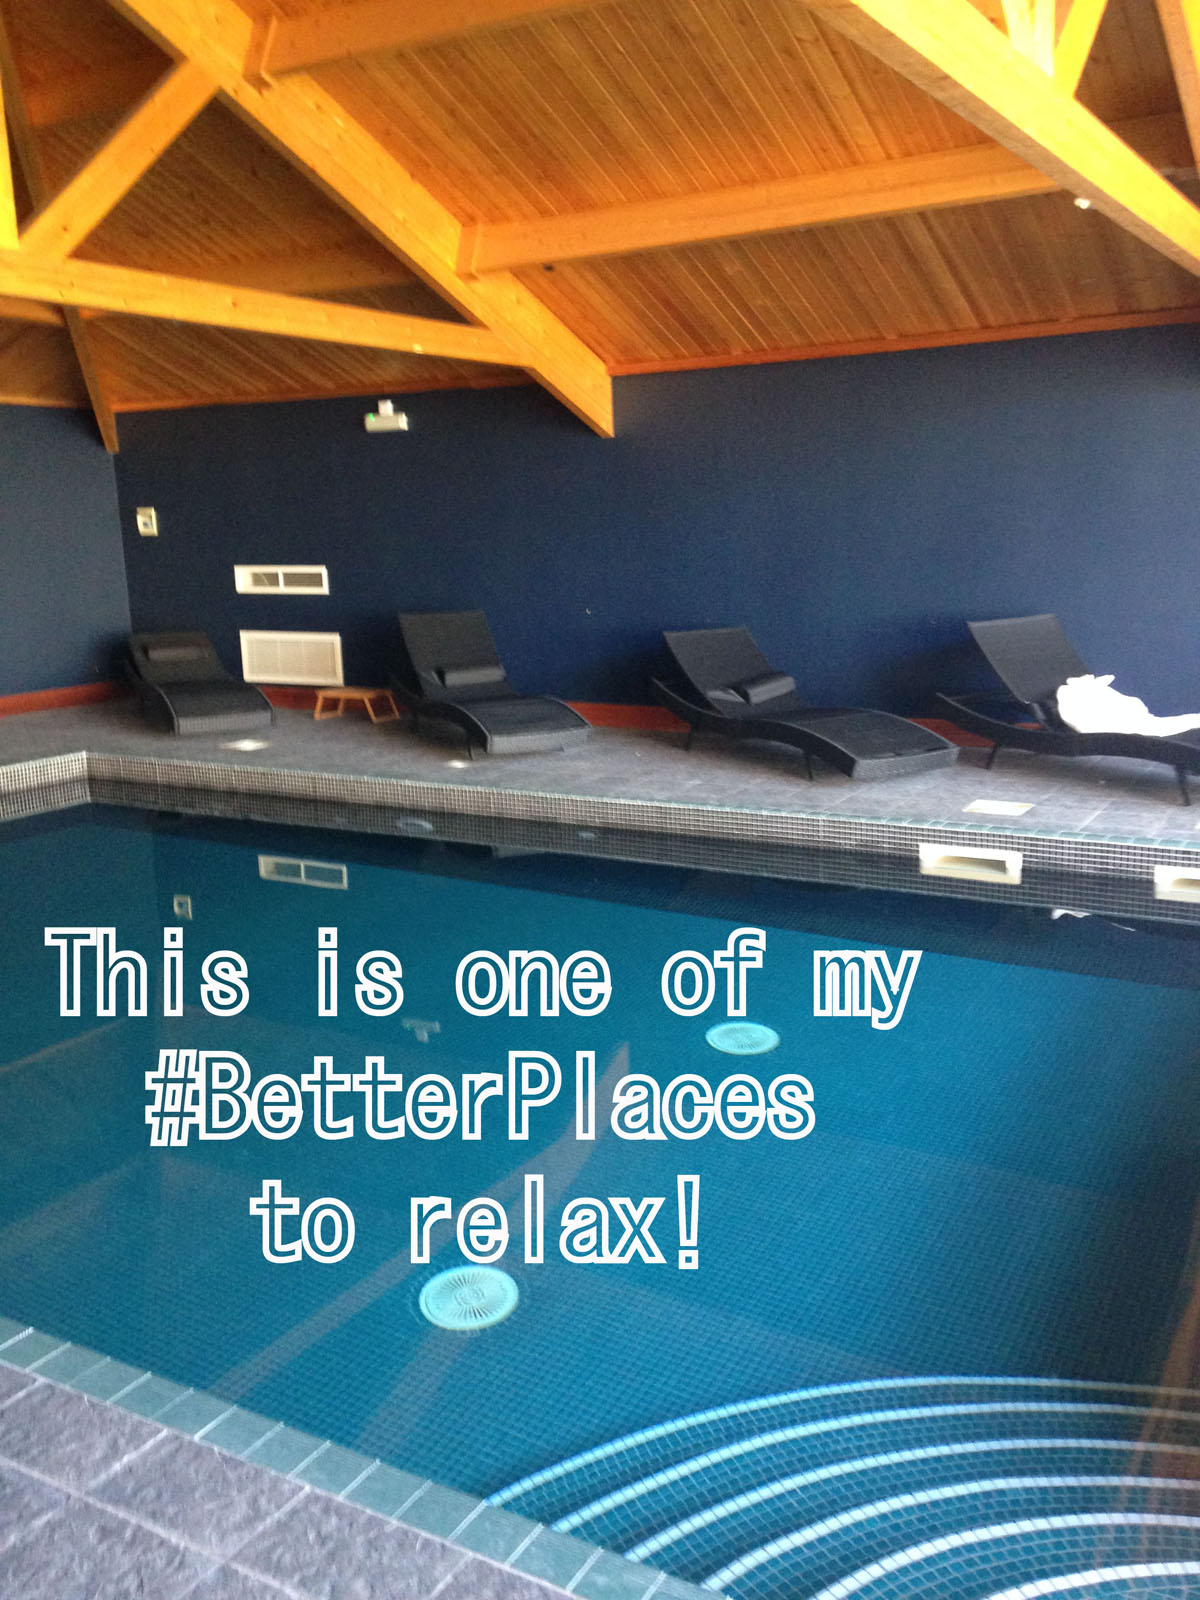 Are there #BetterPlaces to relax than a spa